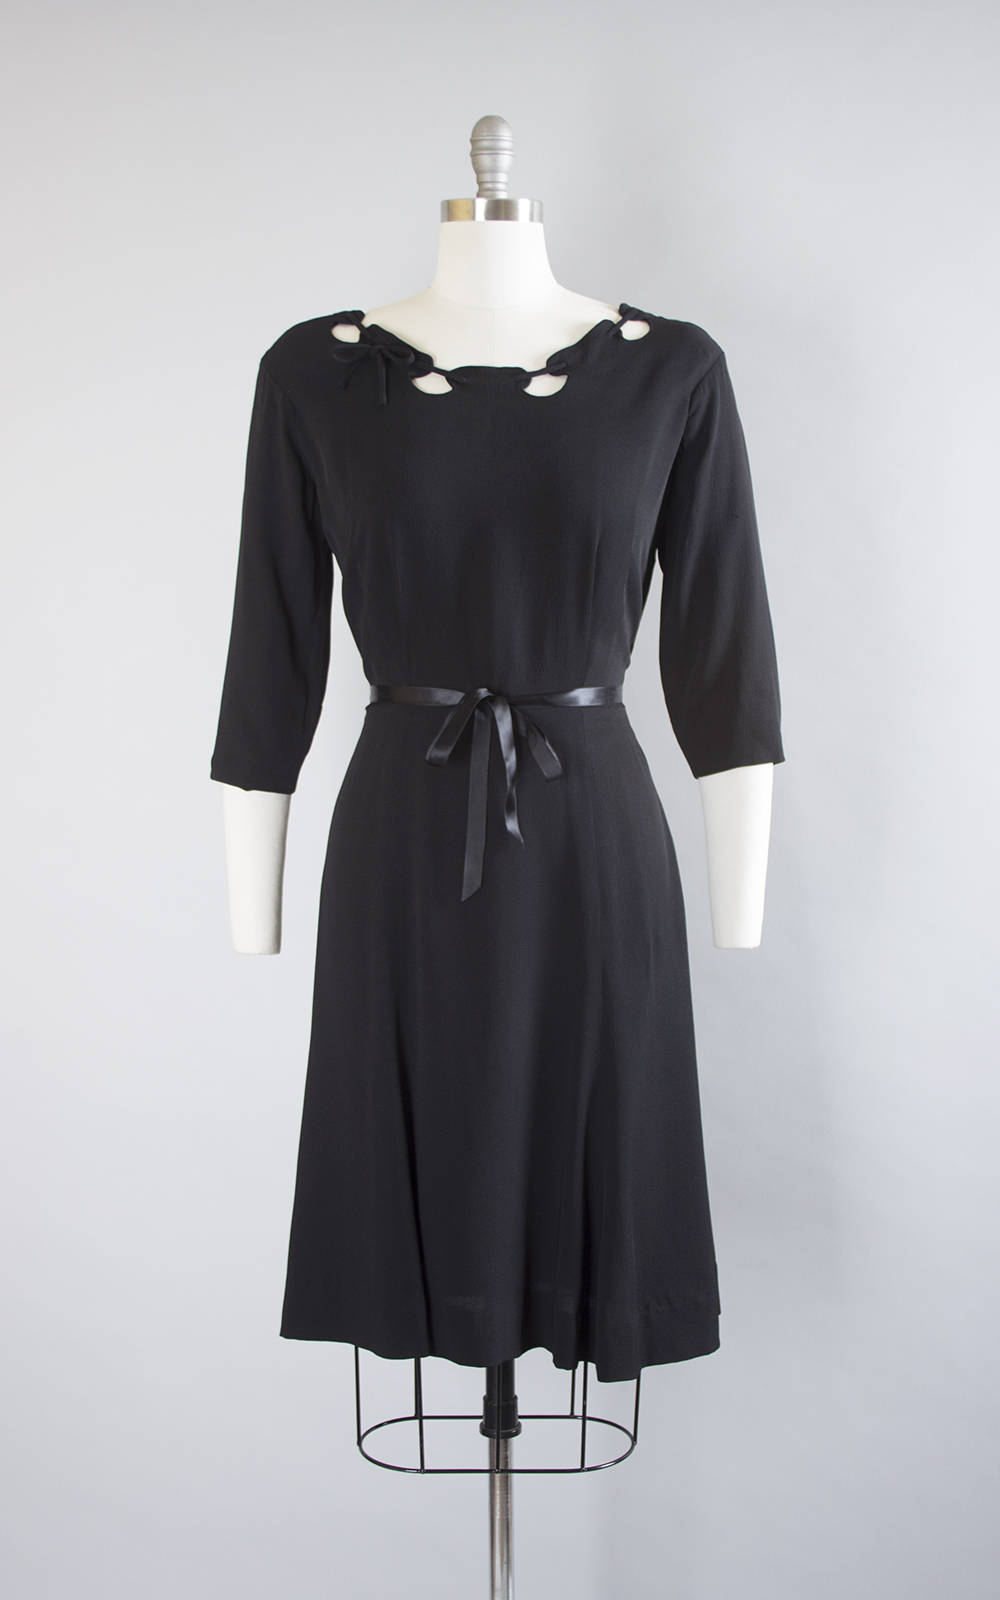 Vintage 1940s Dress | 40s Black Rayon Laced Cutout Neckline Swing Skirt Evening Cocktail Dress (medium)